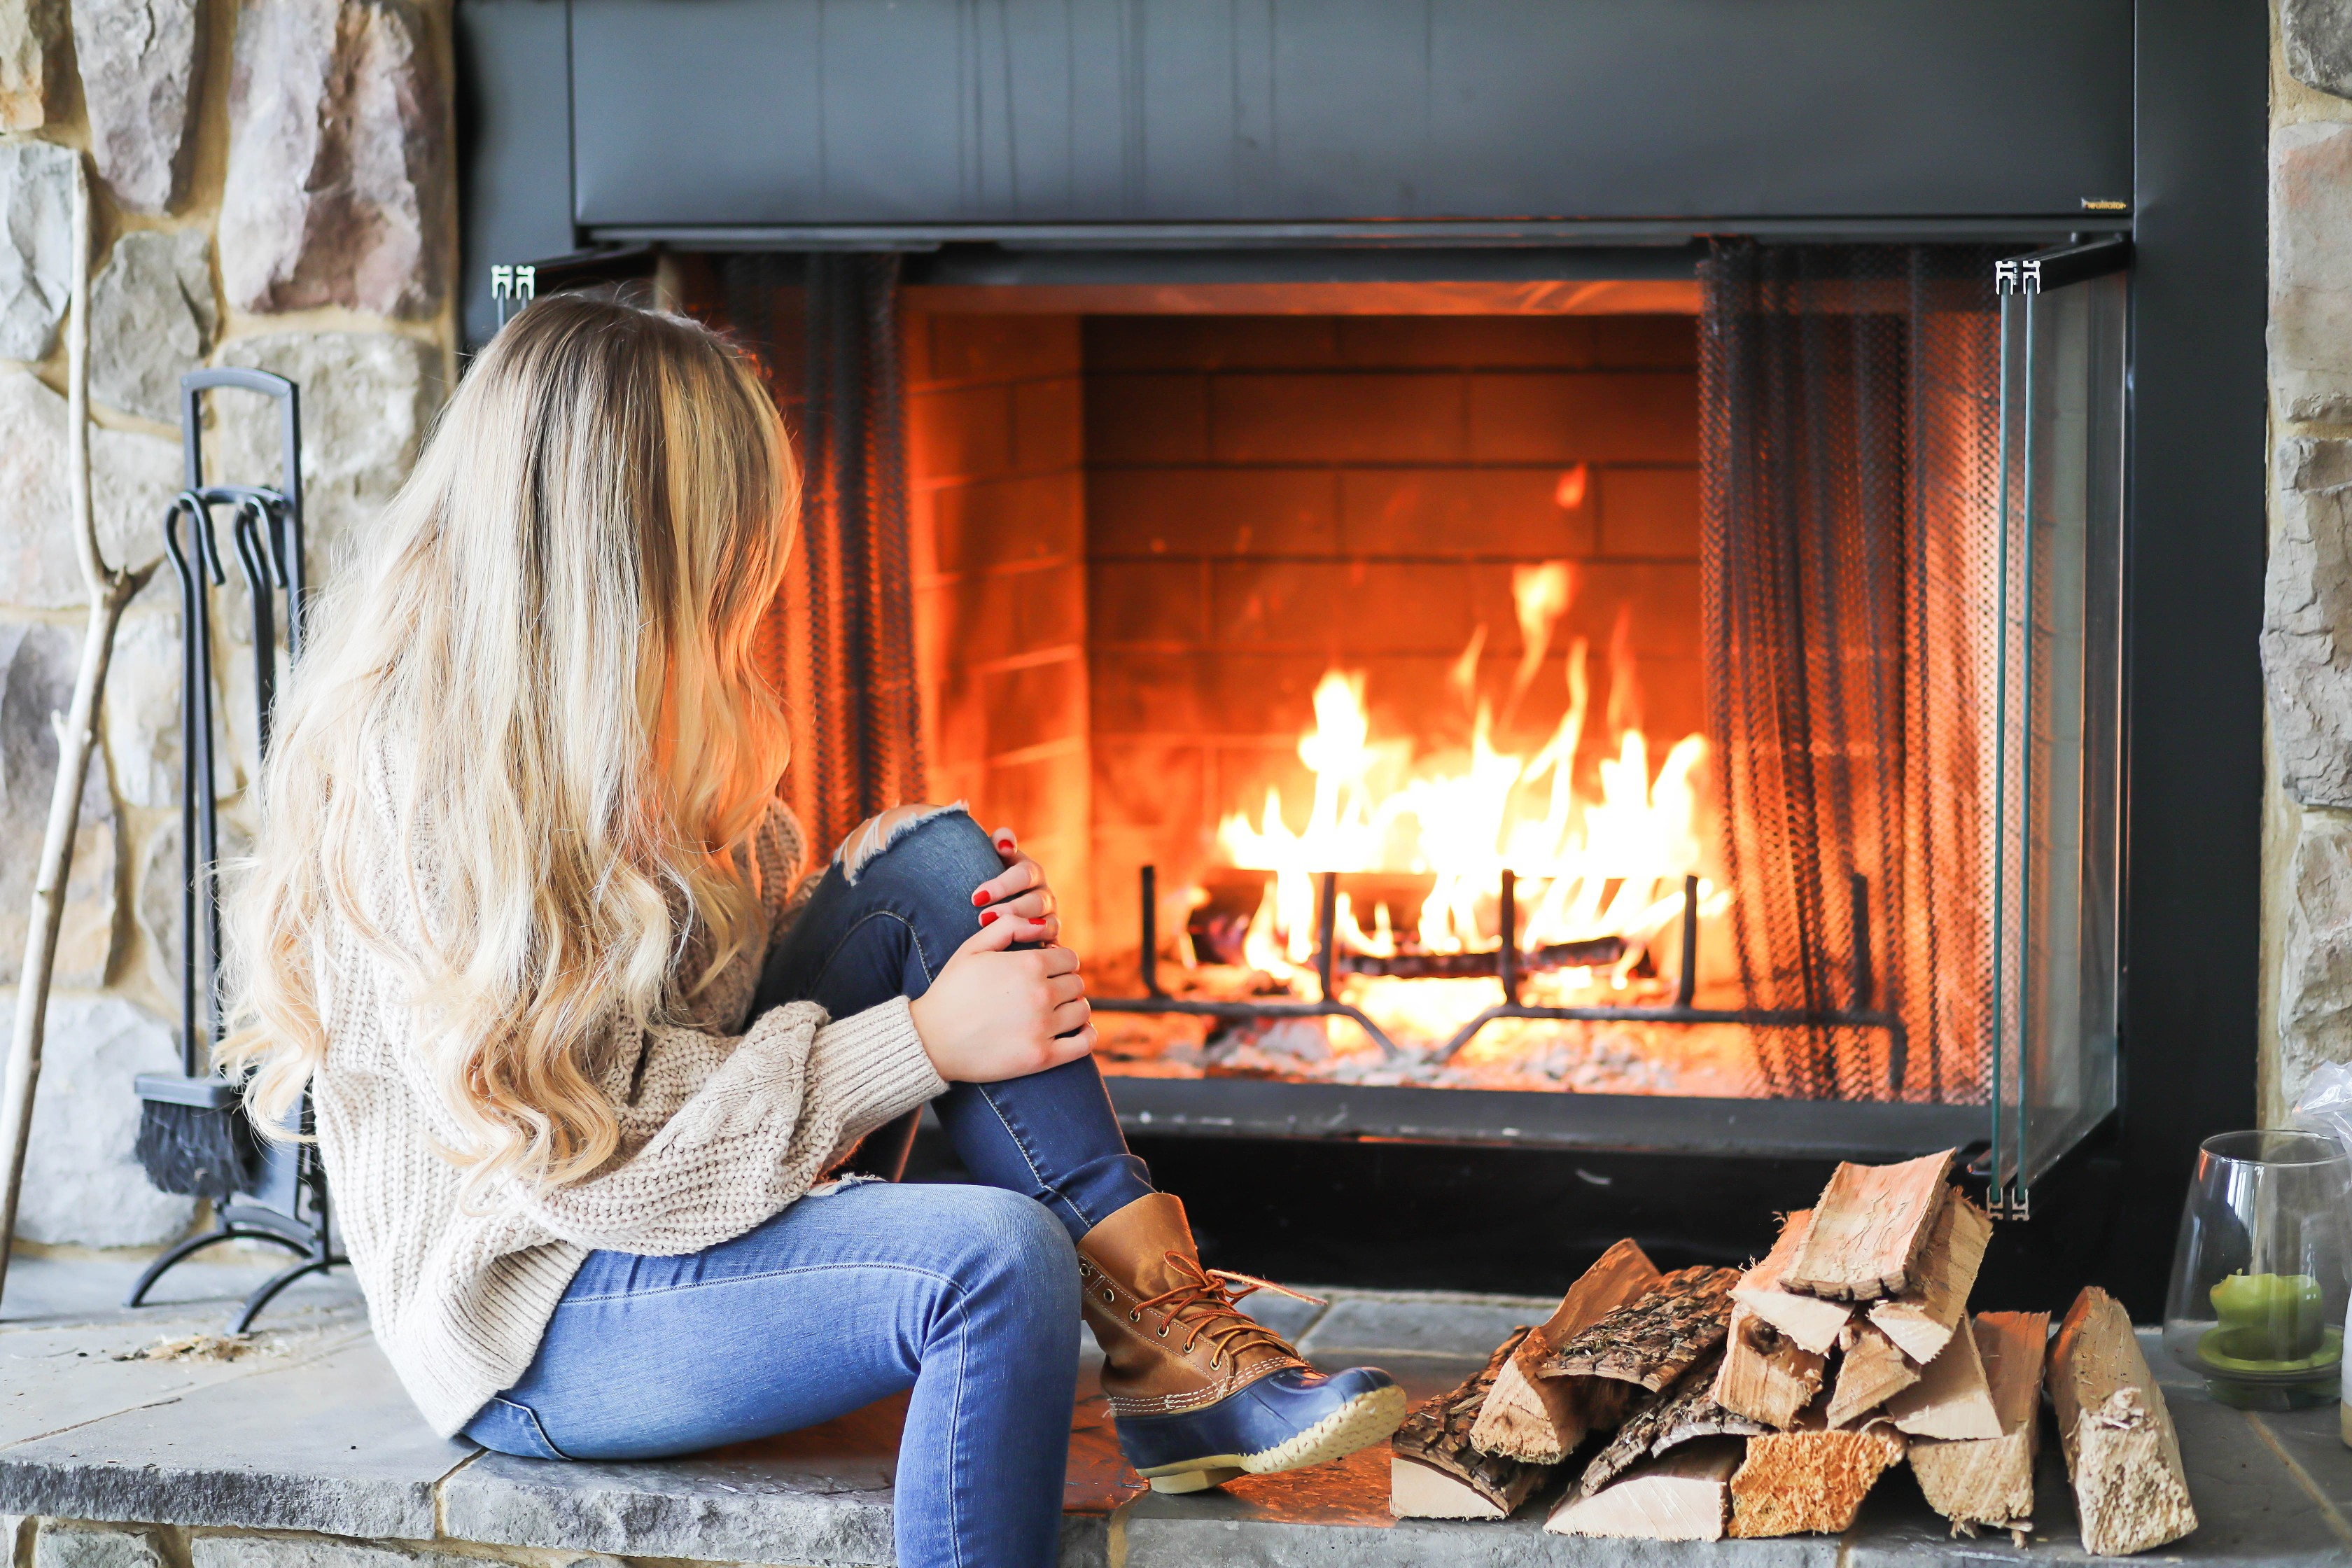 Cozy cable knit sweater in front of stone fireplace! This winter cable knit sweater is so cute and the fire looks so inviting! I paired it with my L.L. Bean duck Boots! Details on fashion blog daily dose of charm by lauren lindmark